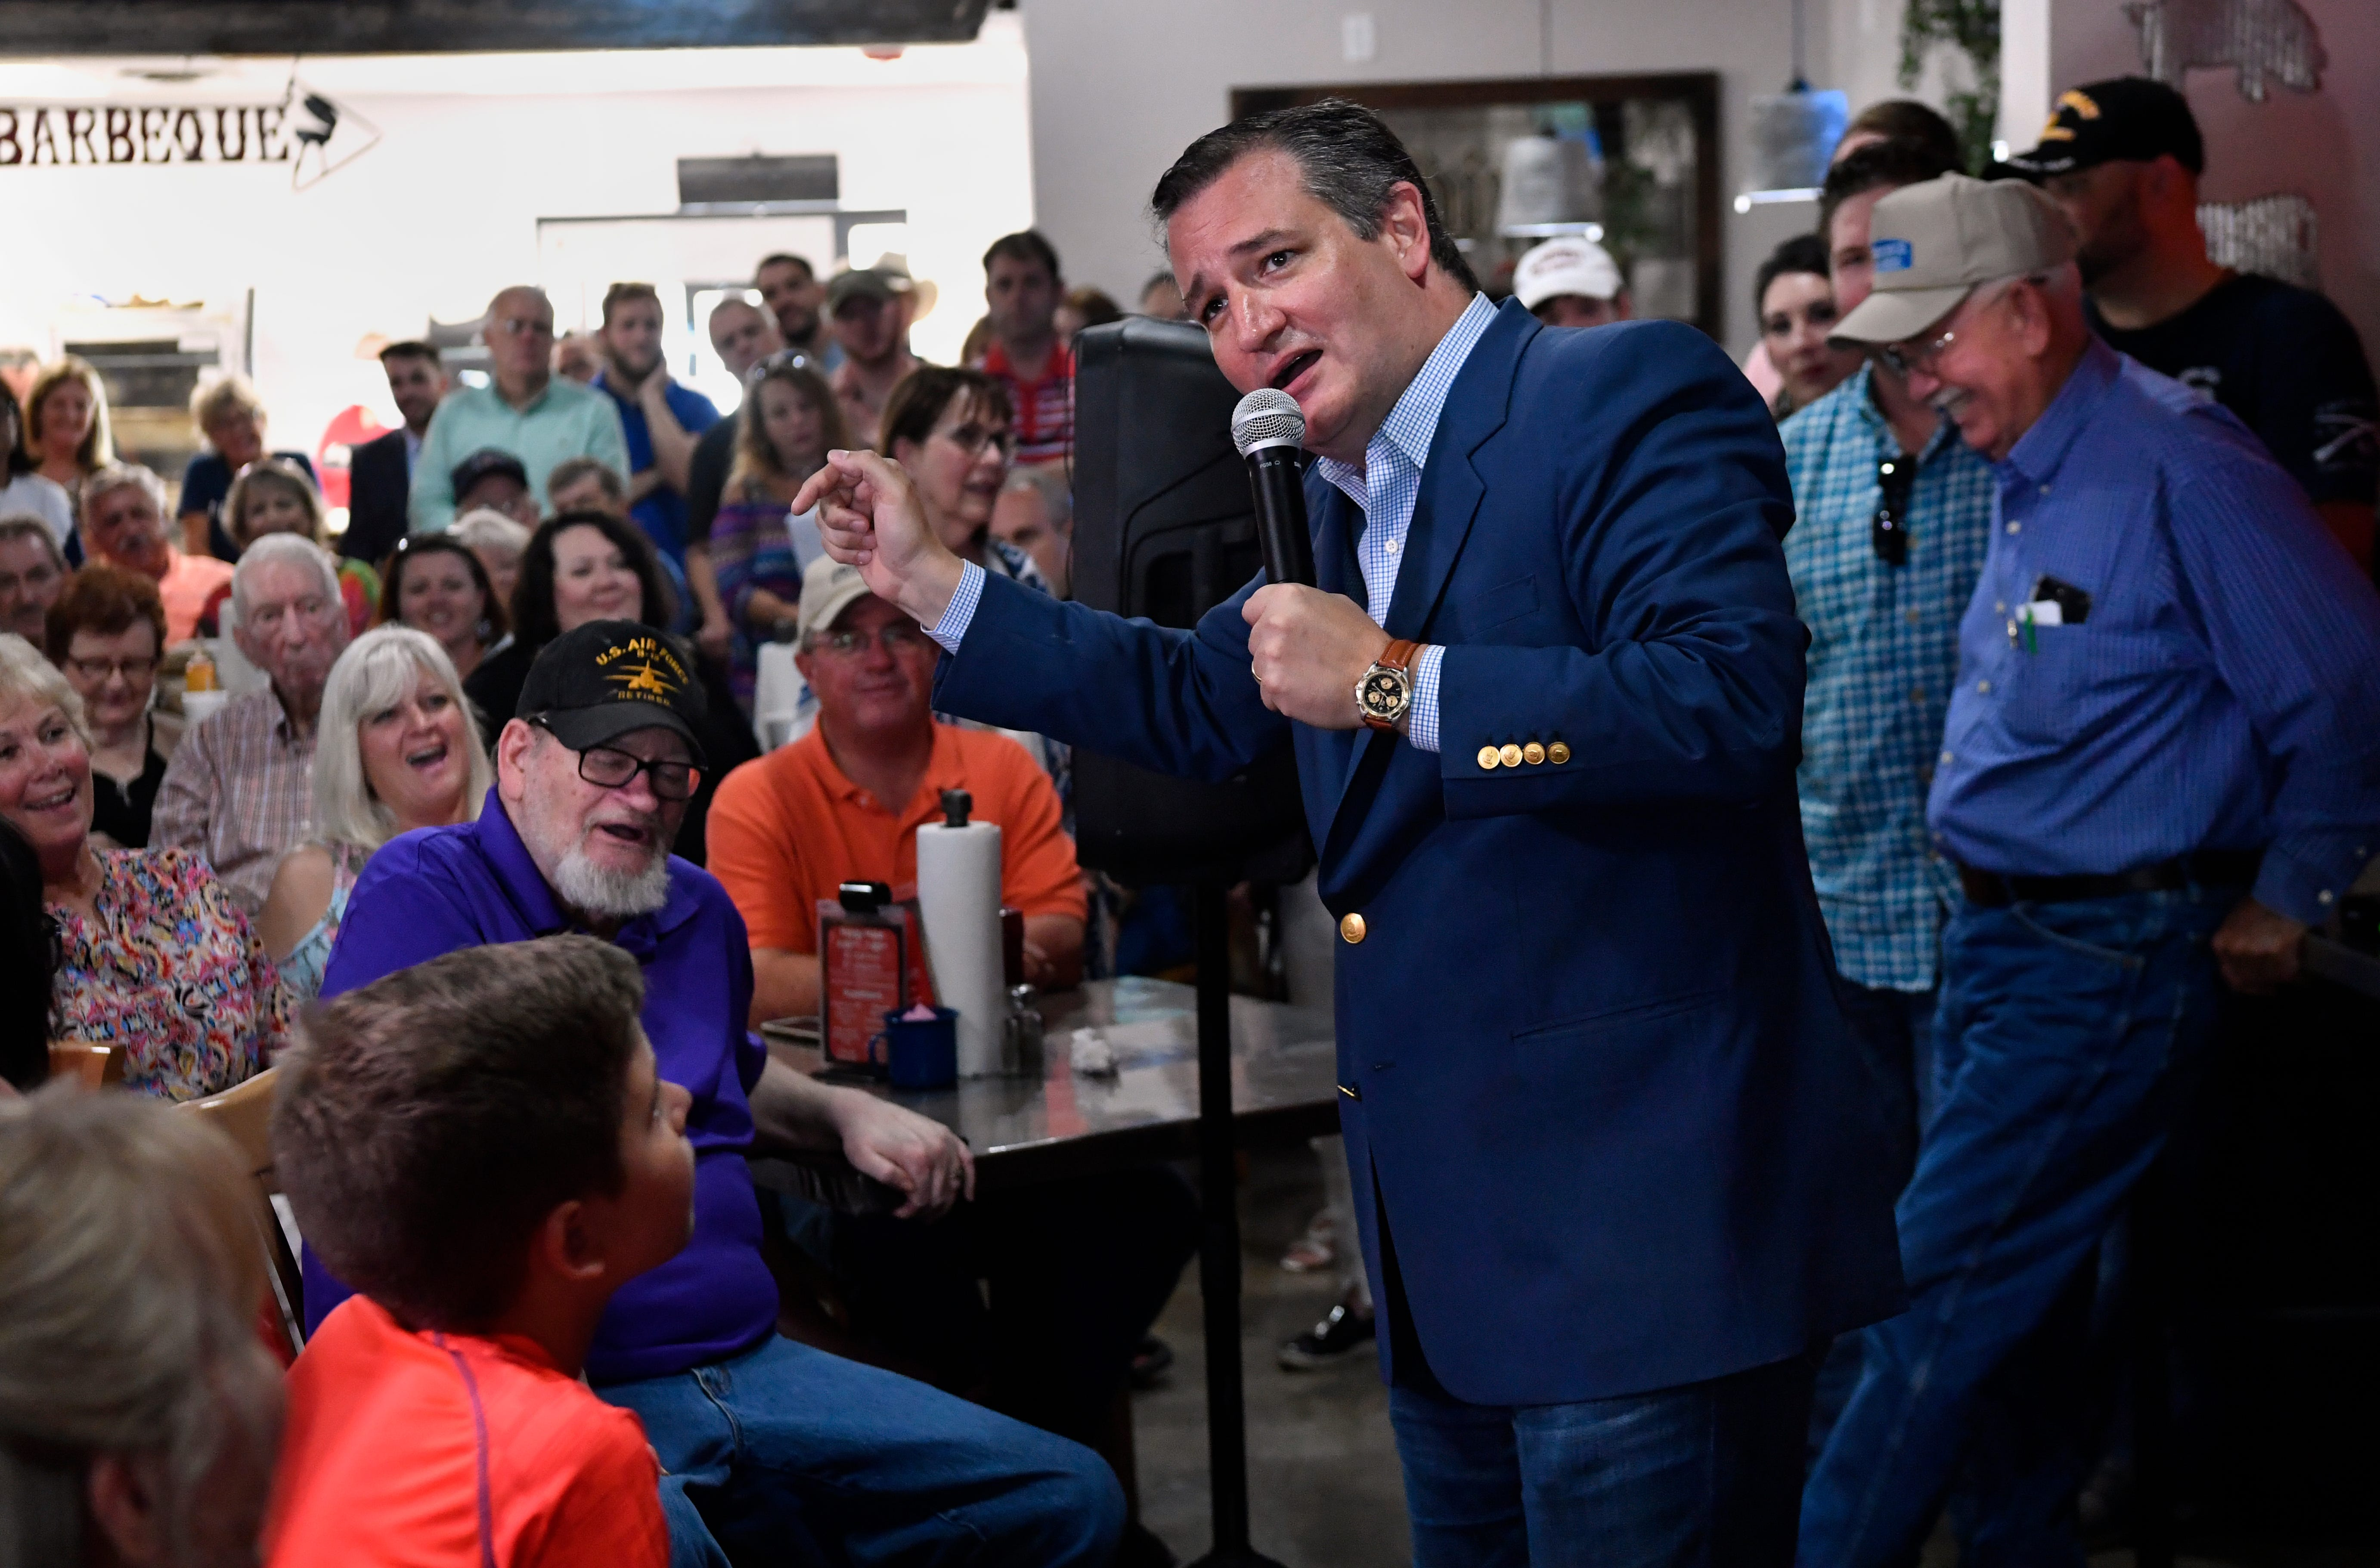 Audience members laugh as U.S. Senator Ted Cruz makes joke about the Democratic Party during an Abilene campaign stop Thursday August 30, 2018. The event at the Betty Rose's Little Brisket Catclaw Dr. location was the senator's first public campaign event in Abilene for the 2018 election.